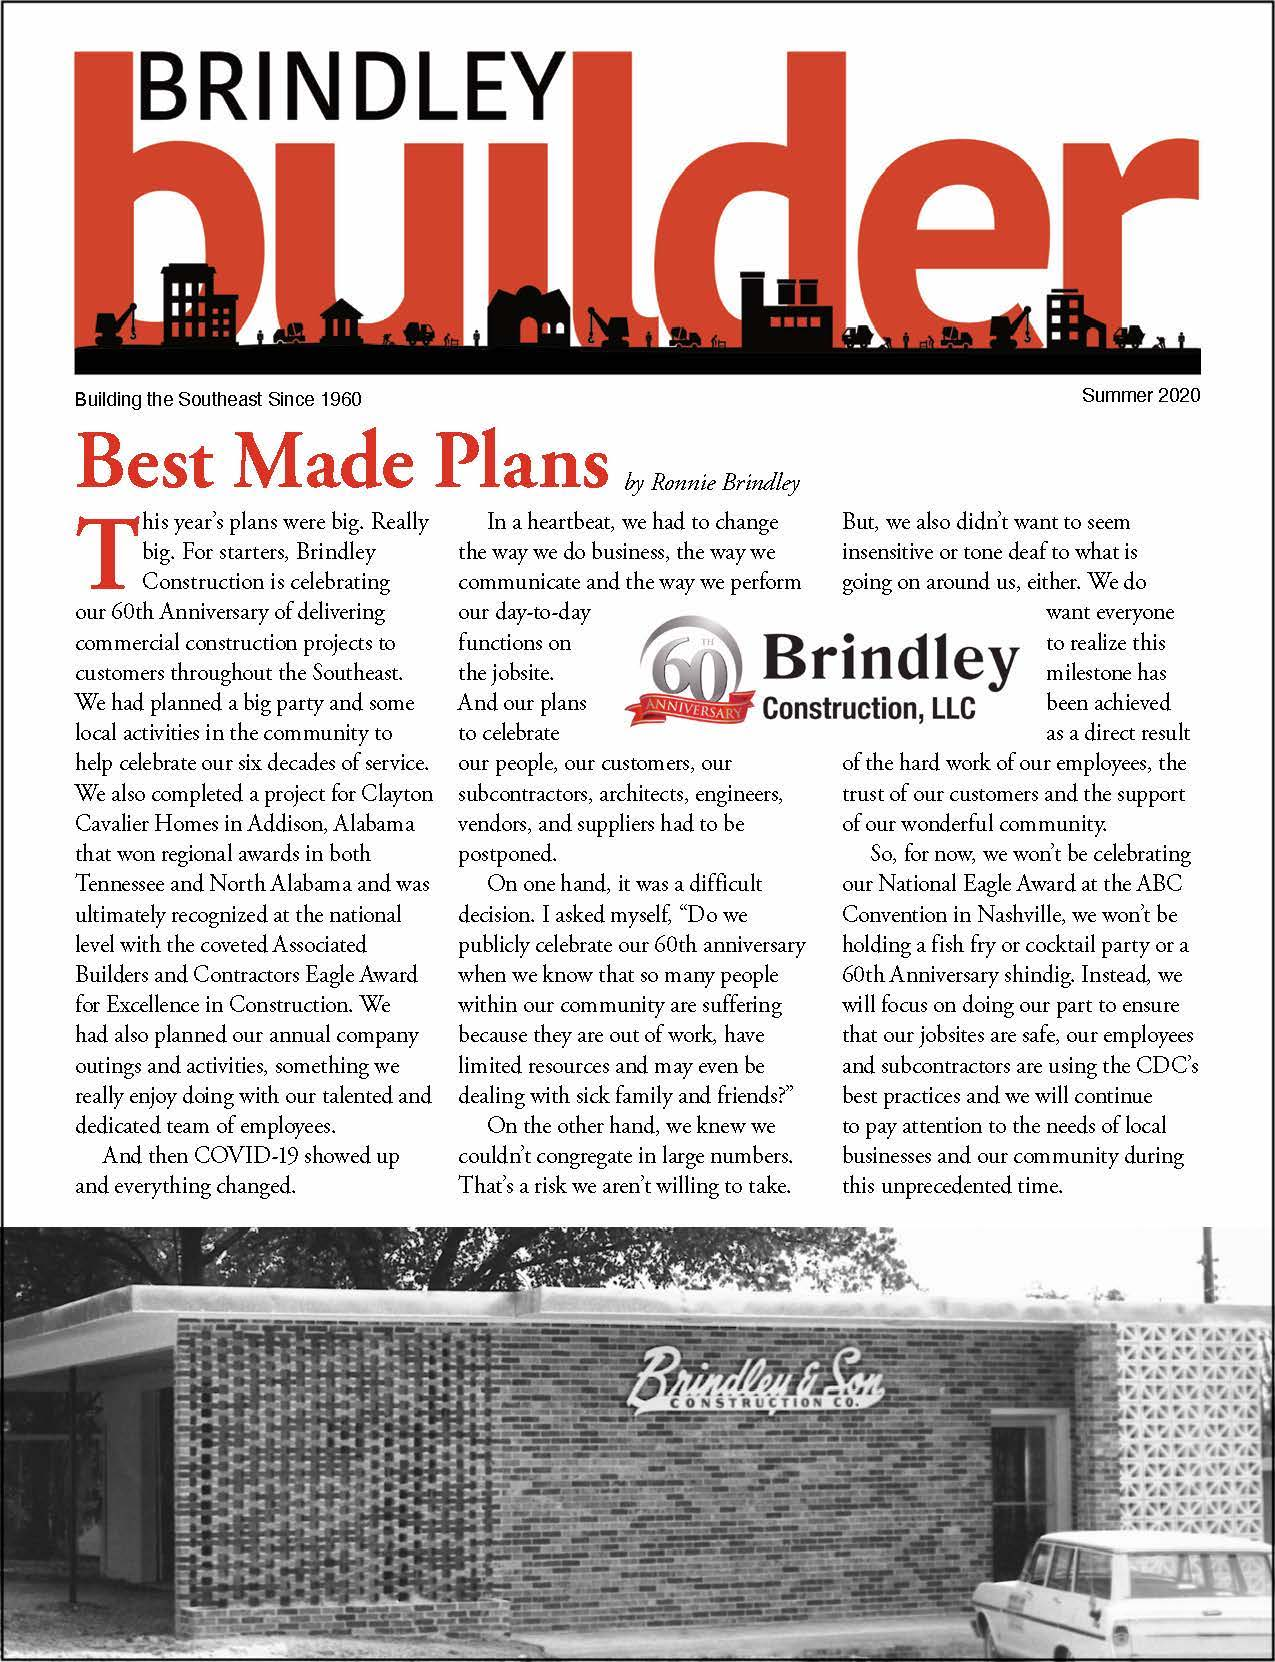 The Brindley Builder | Summer 2020 Issue | Brindley Construction